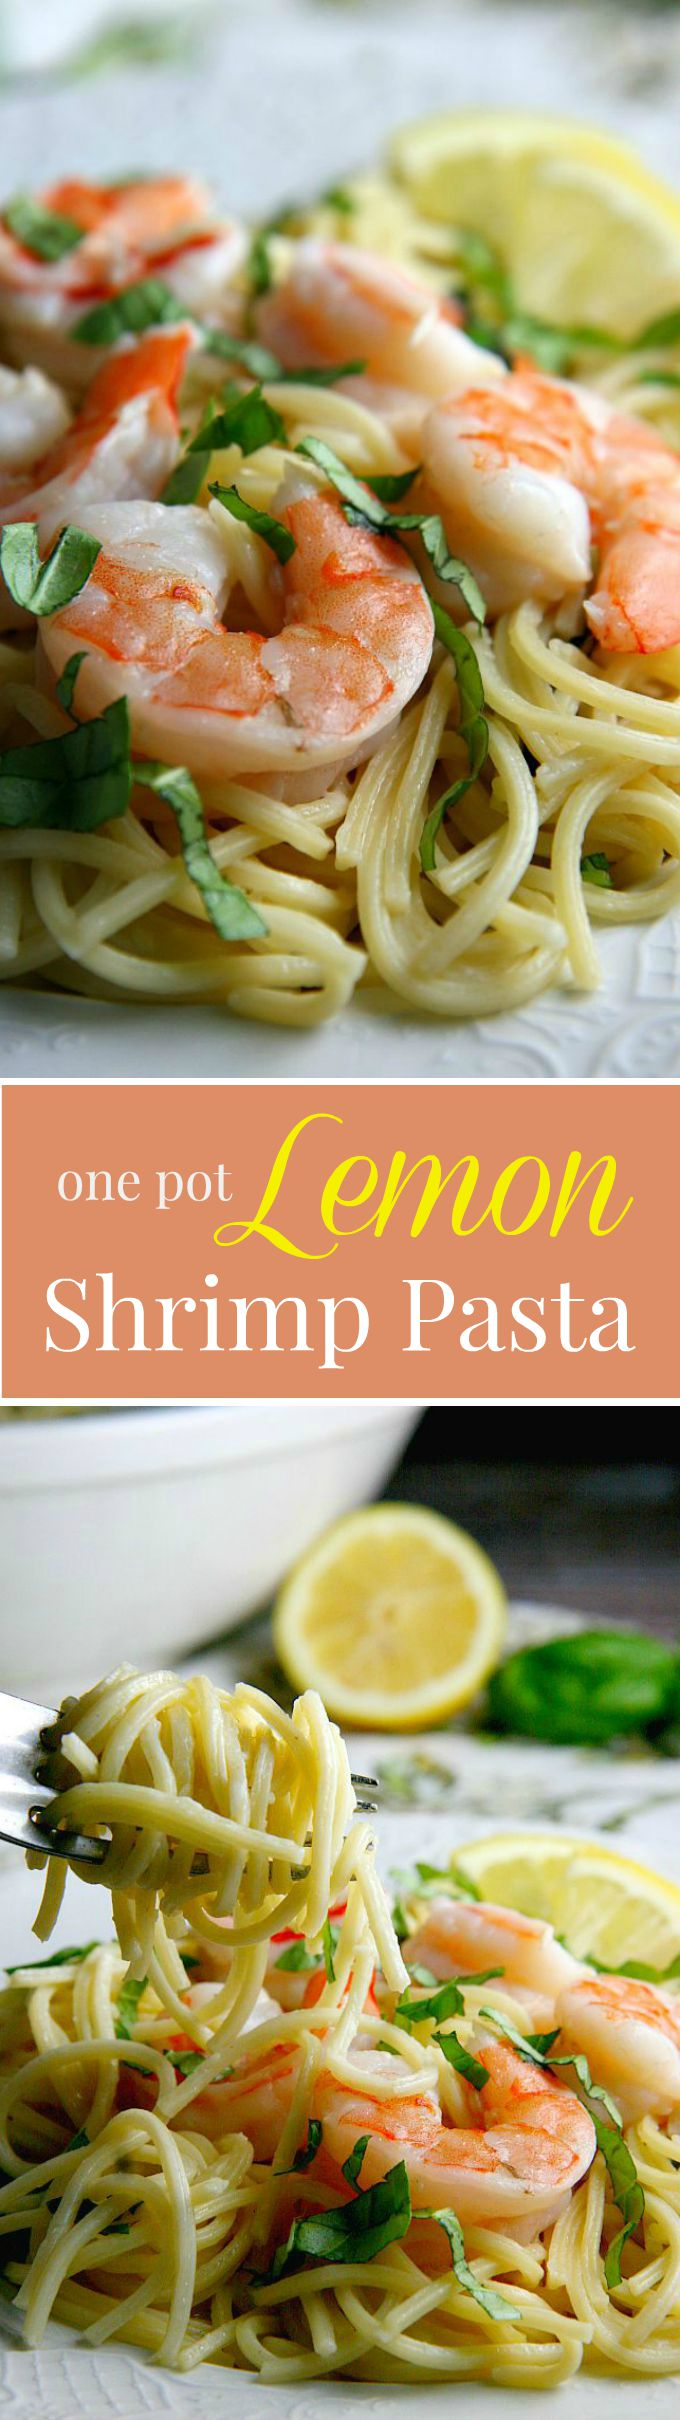 One Pot Lemon Shrimp Pasta...15 minutes, easy and SO delicious! Perfect dinner recipe for busy families!